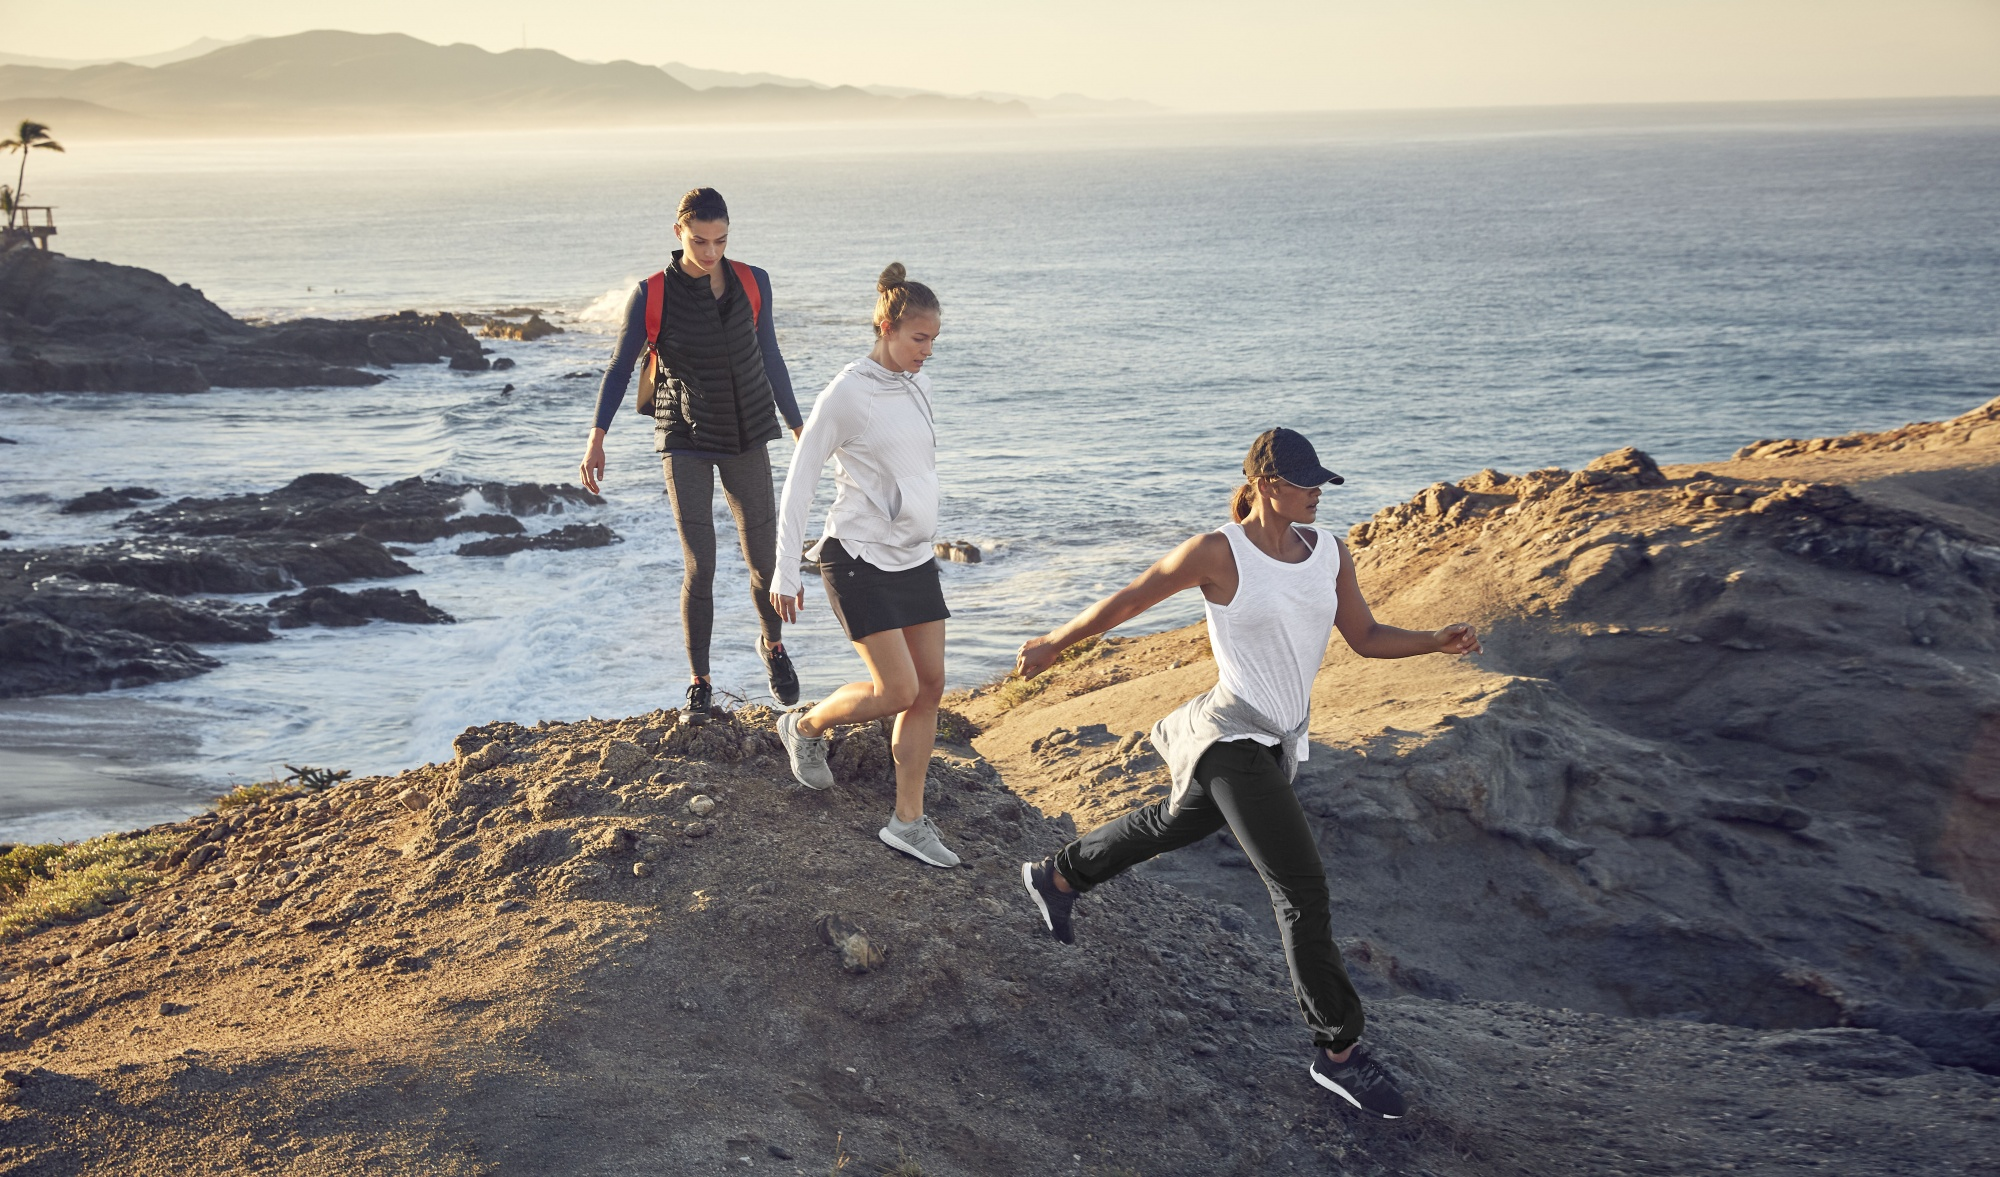 Athleta women's apparel available at REI.